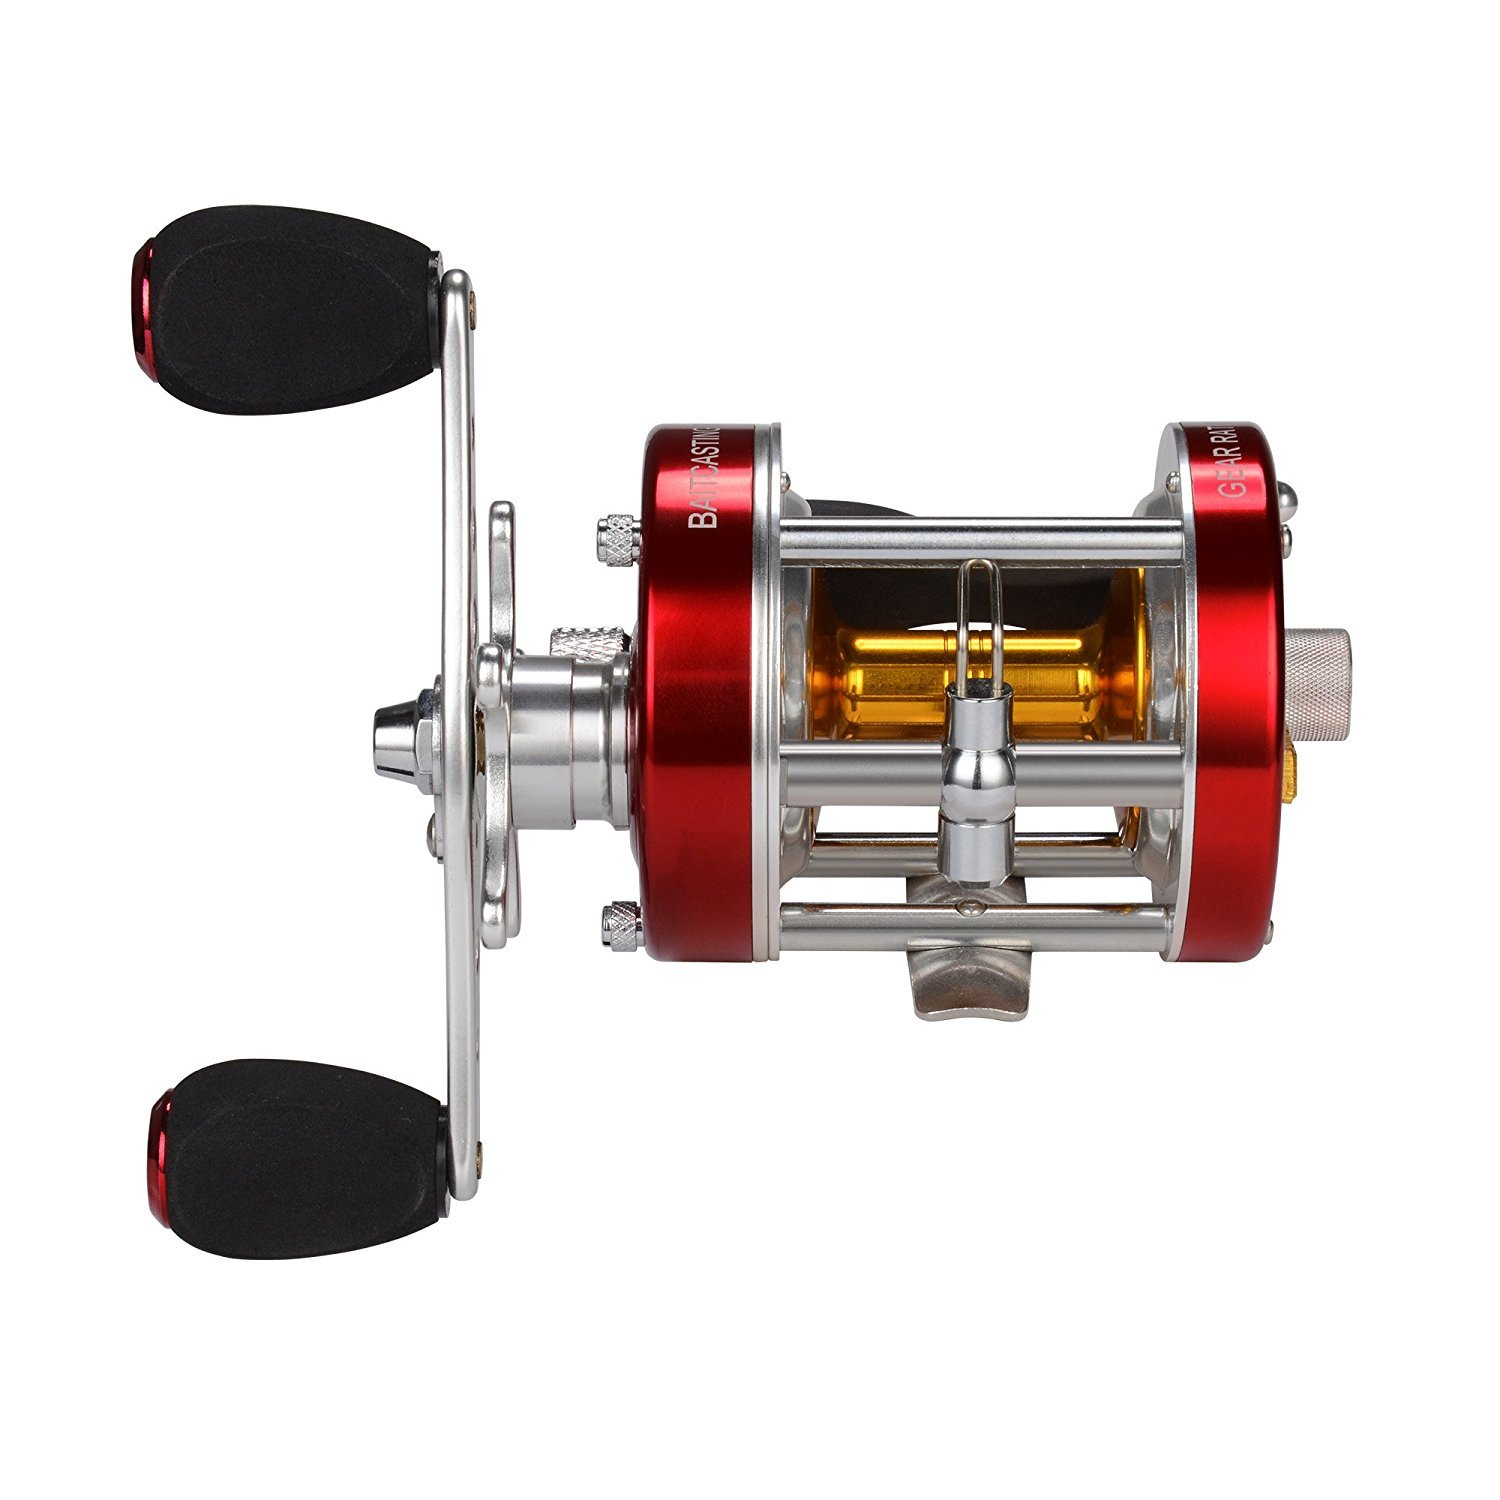 KastKing Rover Round Baitcasting Reel, Right Handed Reel,Rover60 by KastKing (Image #4)